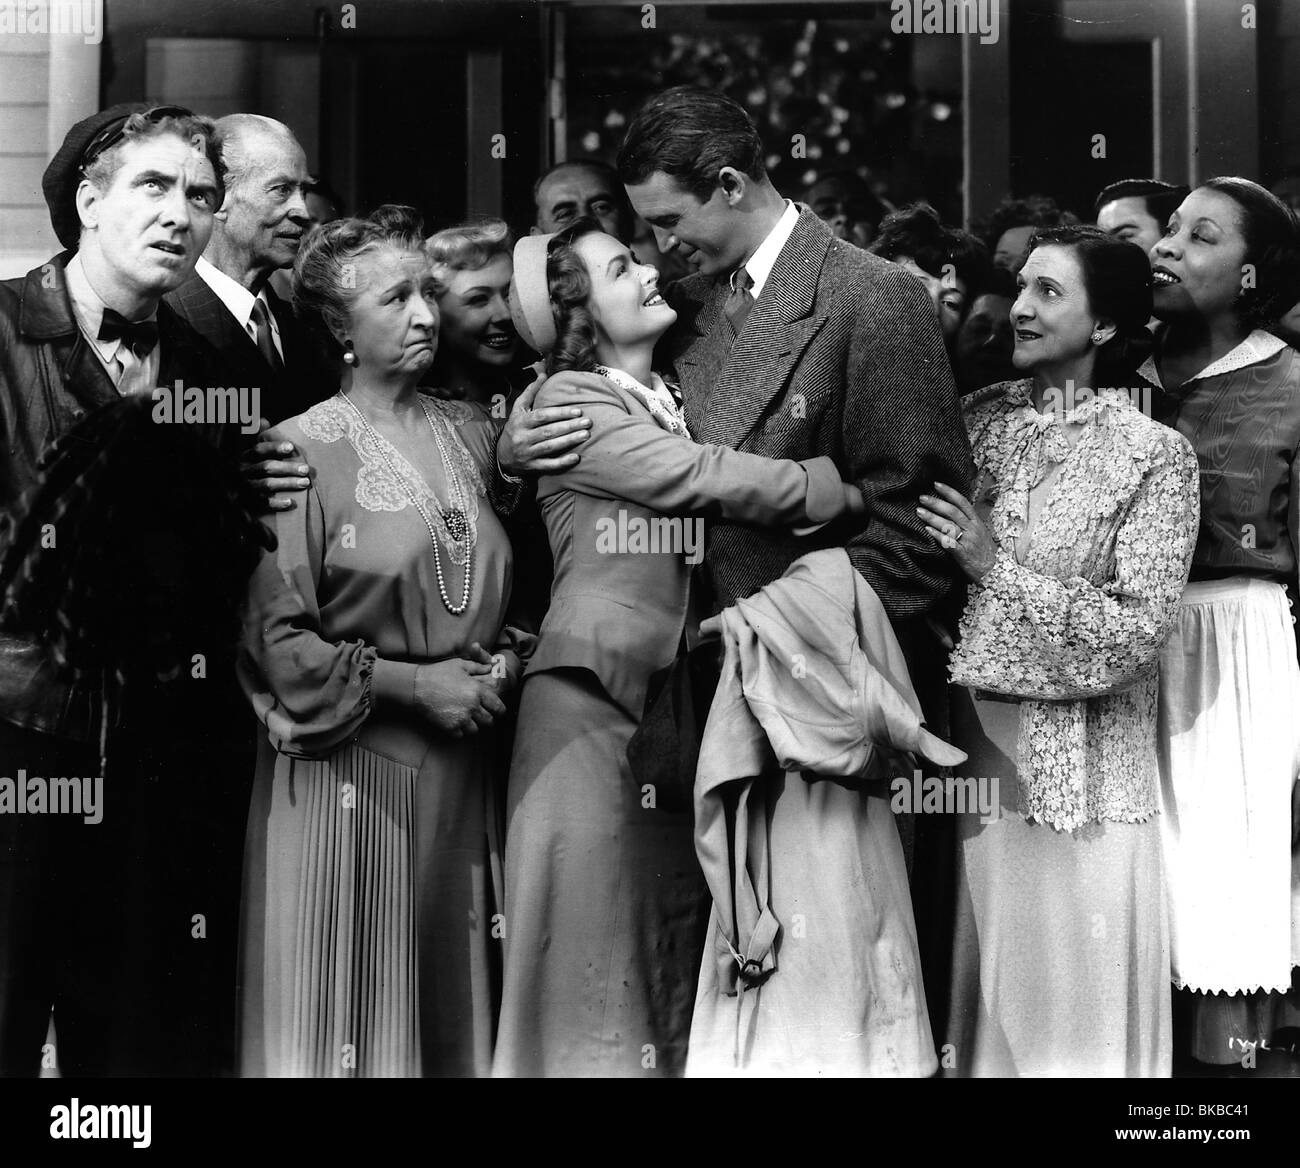 It 39 S A Wonderful Life 1946 Donna Reed James Stewart Iwl 036p Stock Photo Royalty Free Image